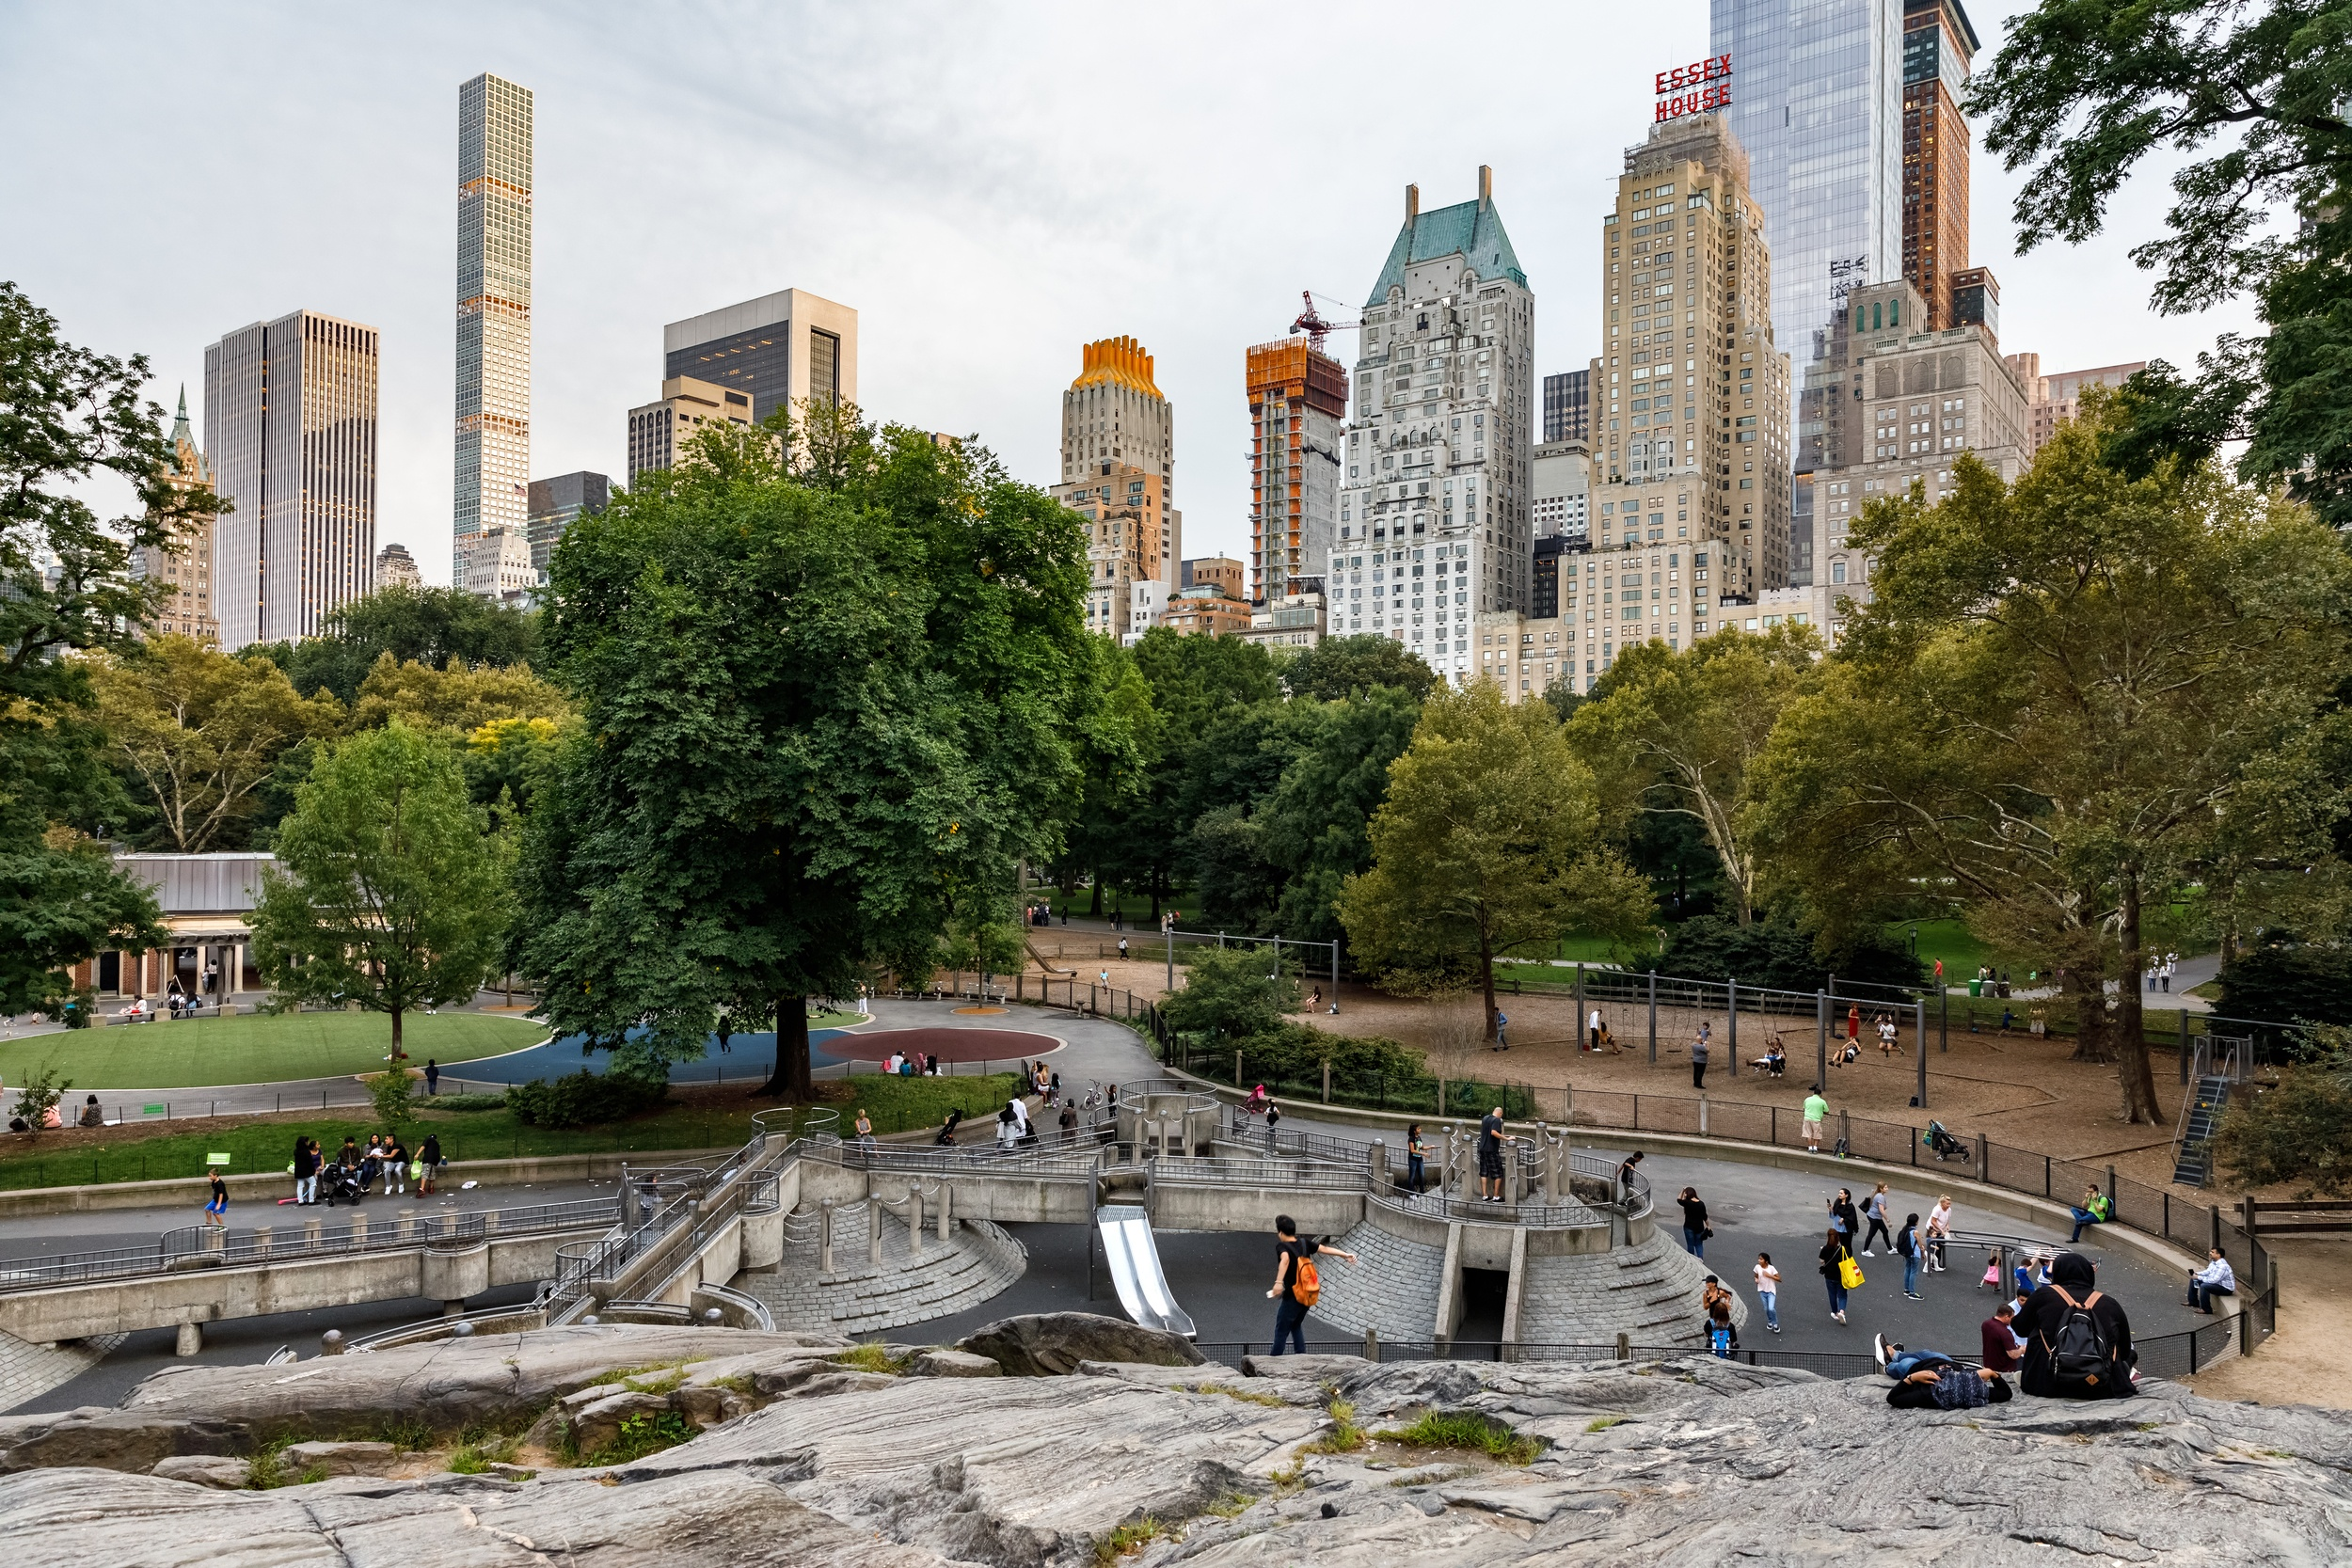 Ancient Playground in Central Park